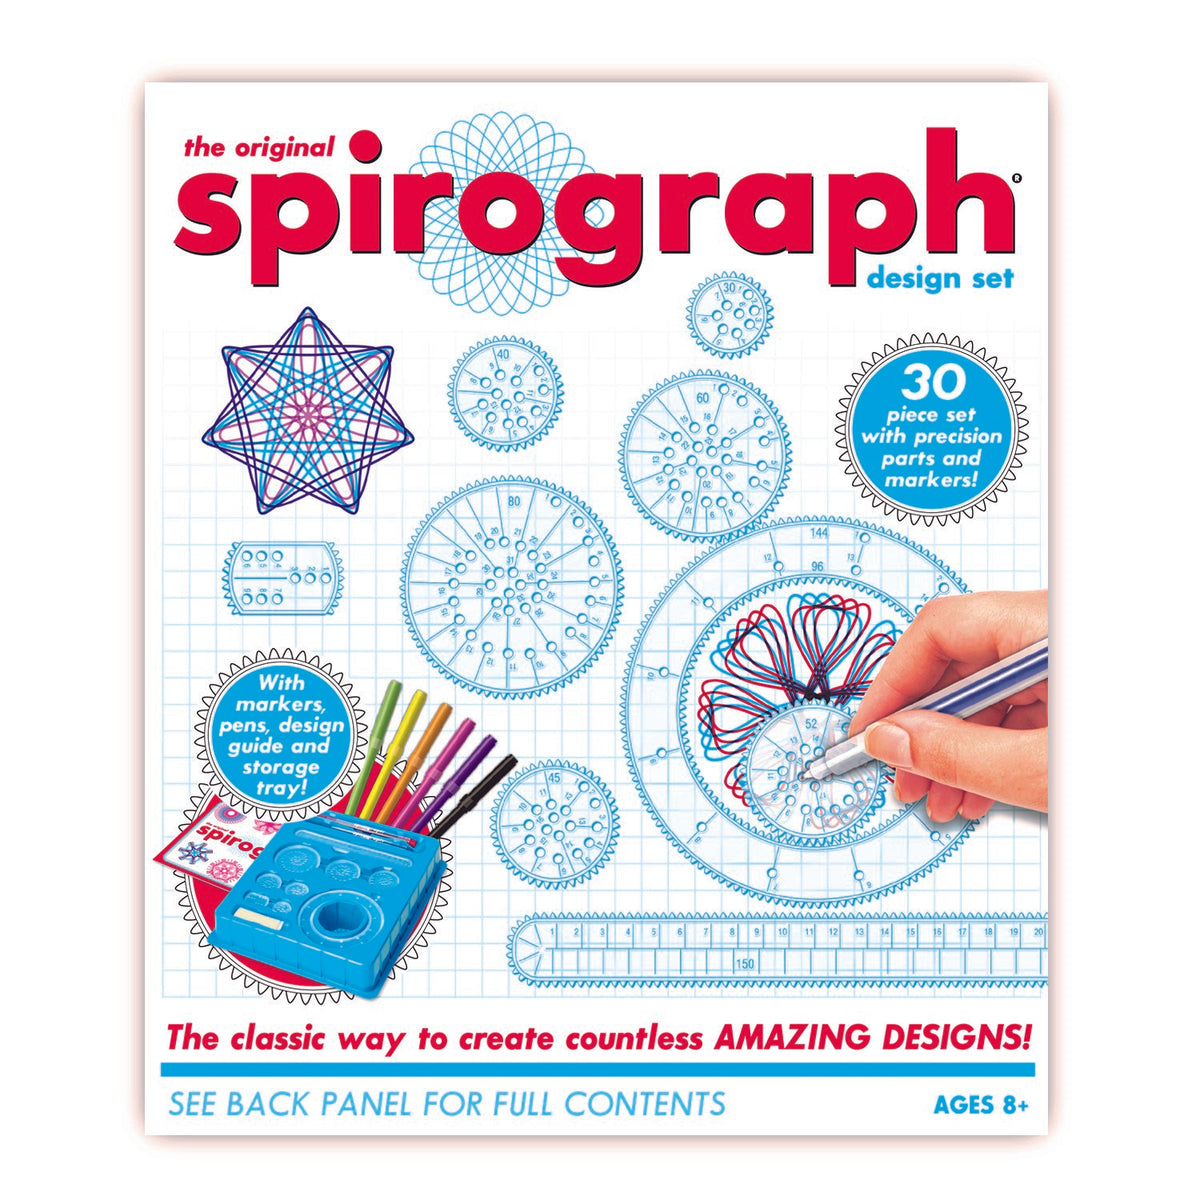 The Original Spirograph Design Set